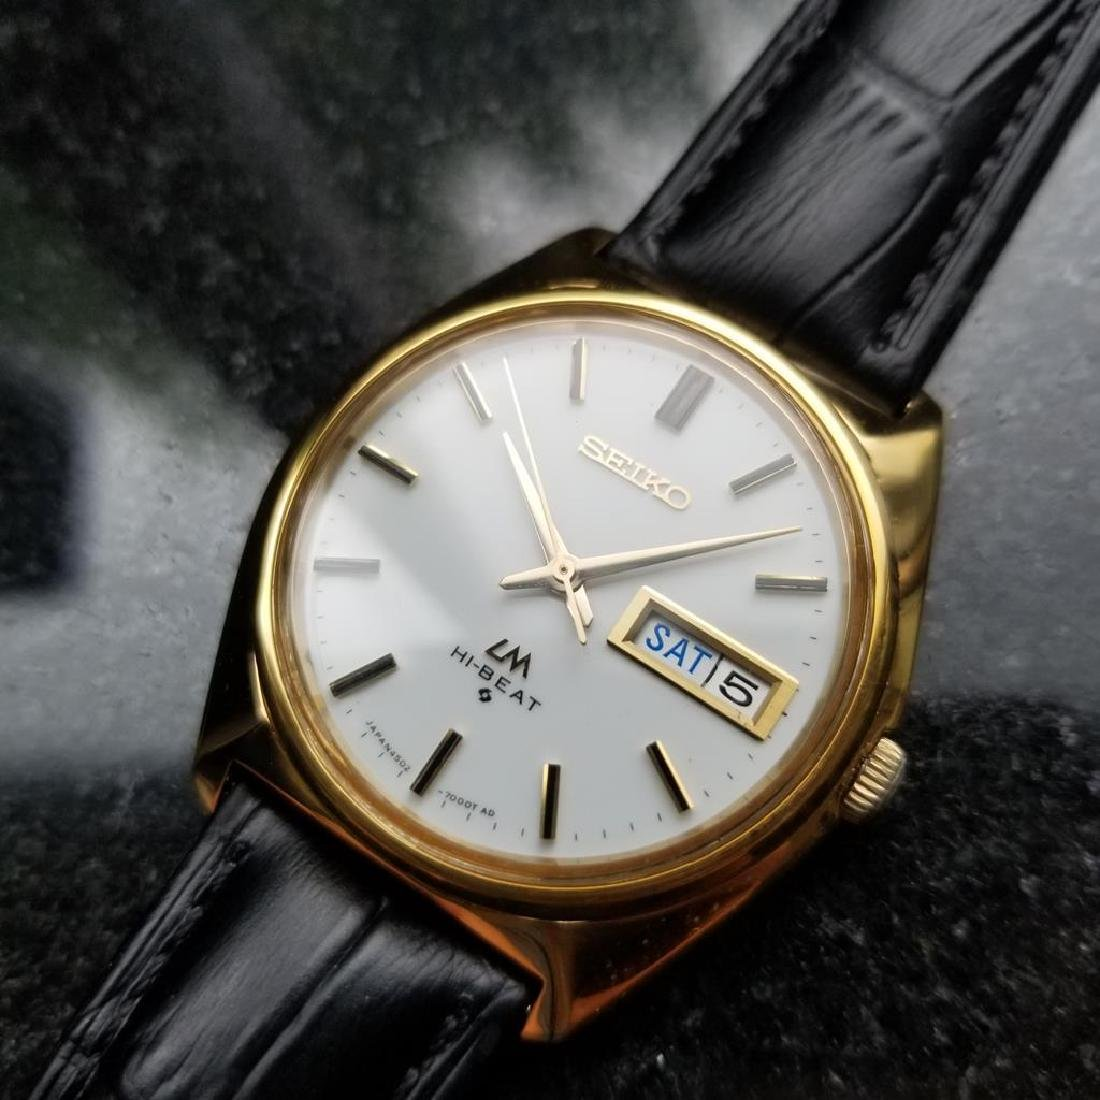 SEIKO Men's 18K Gold-Capped Lord Matic Hi Beat Day Date